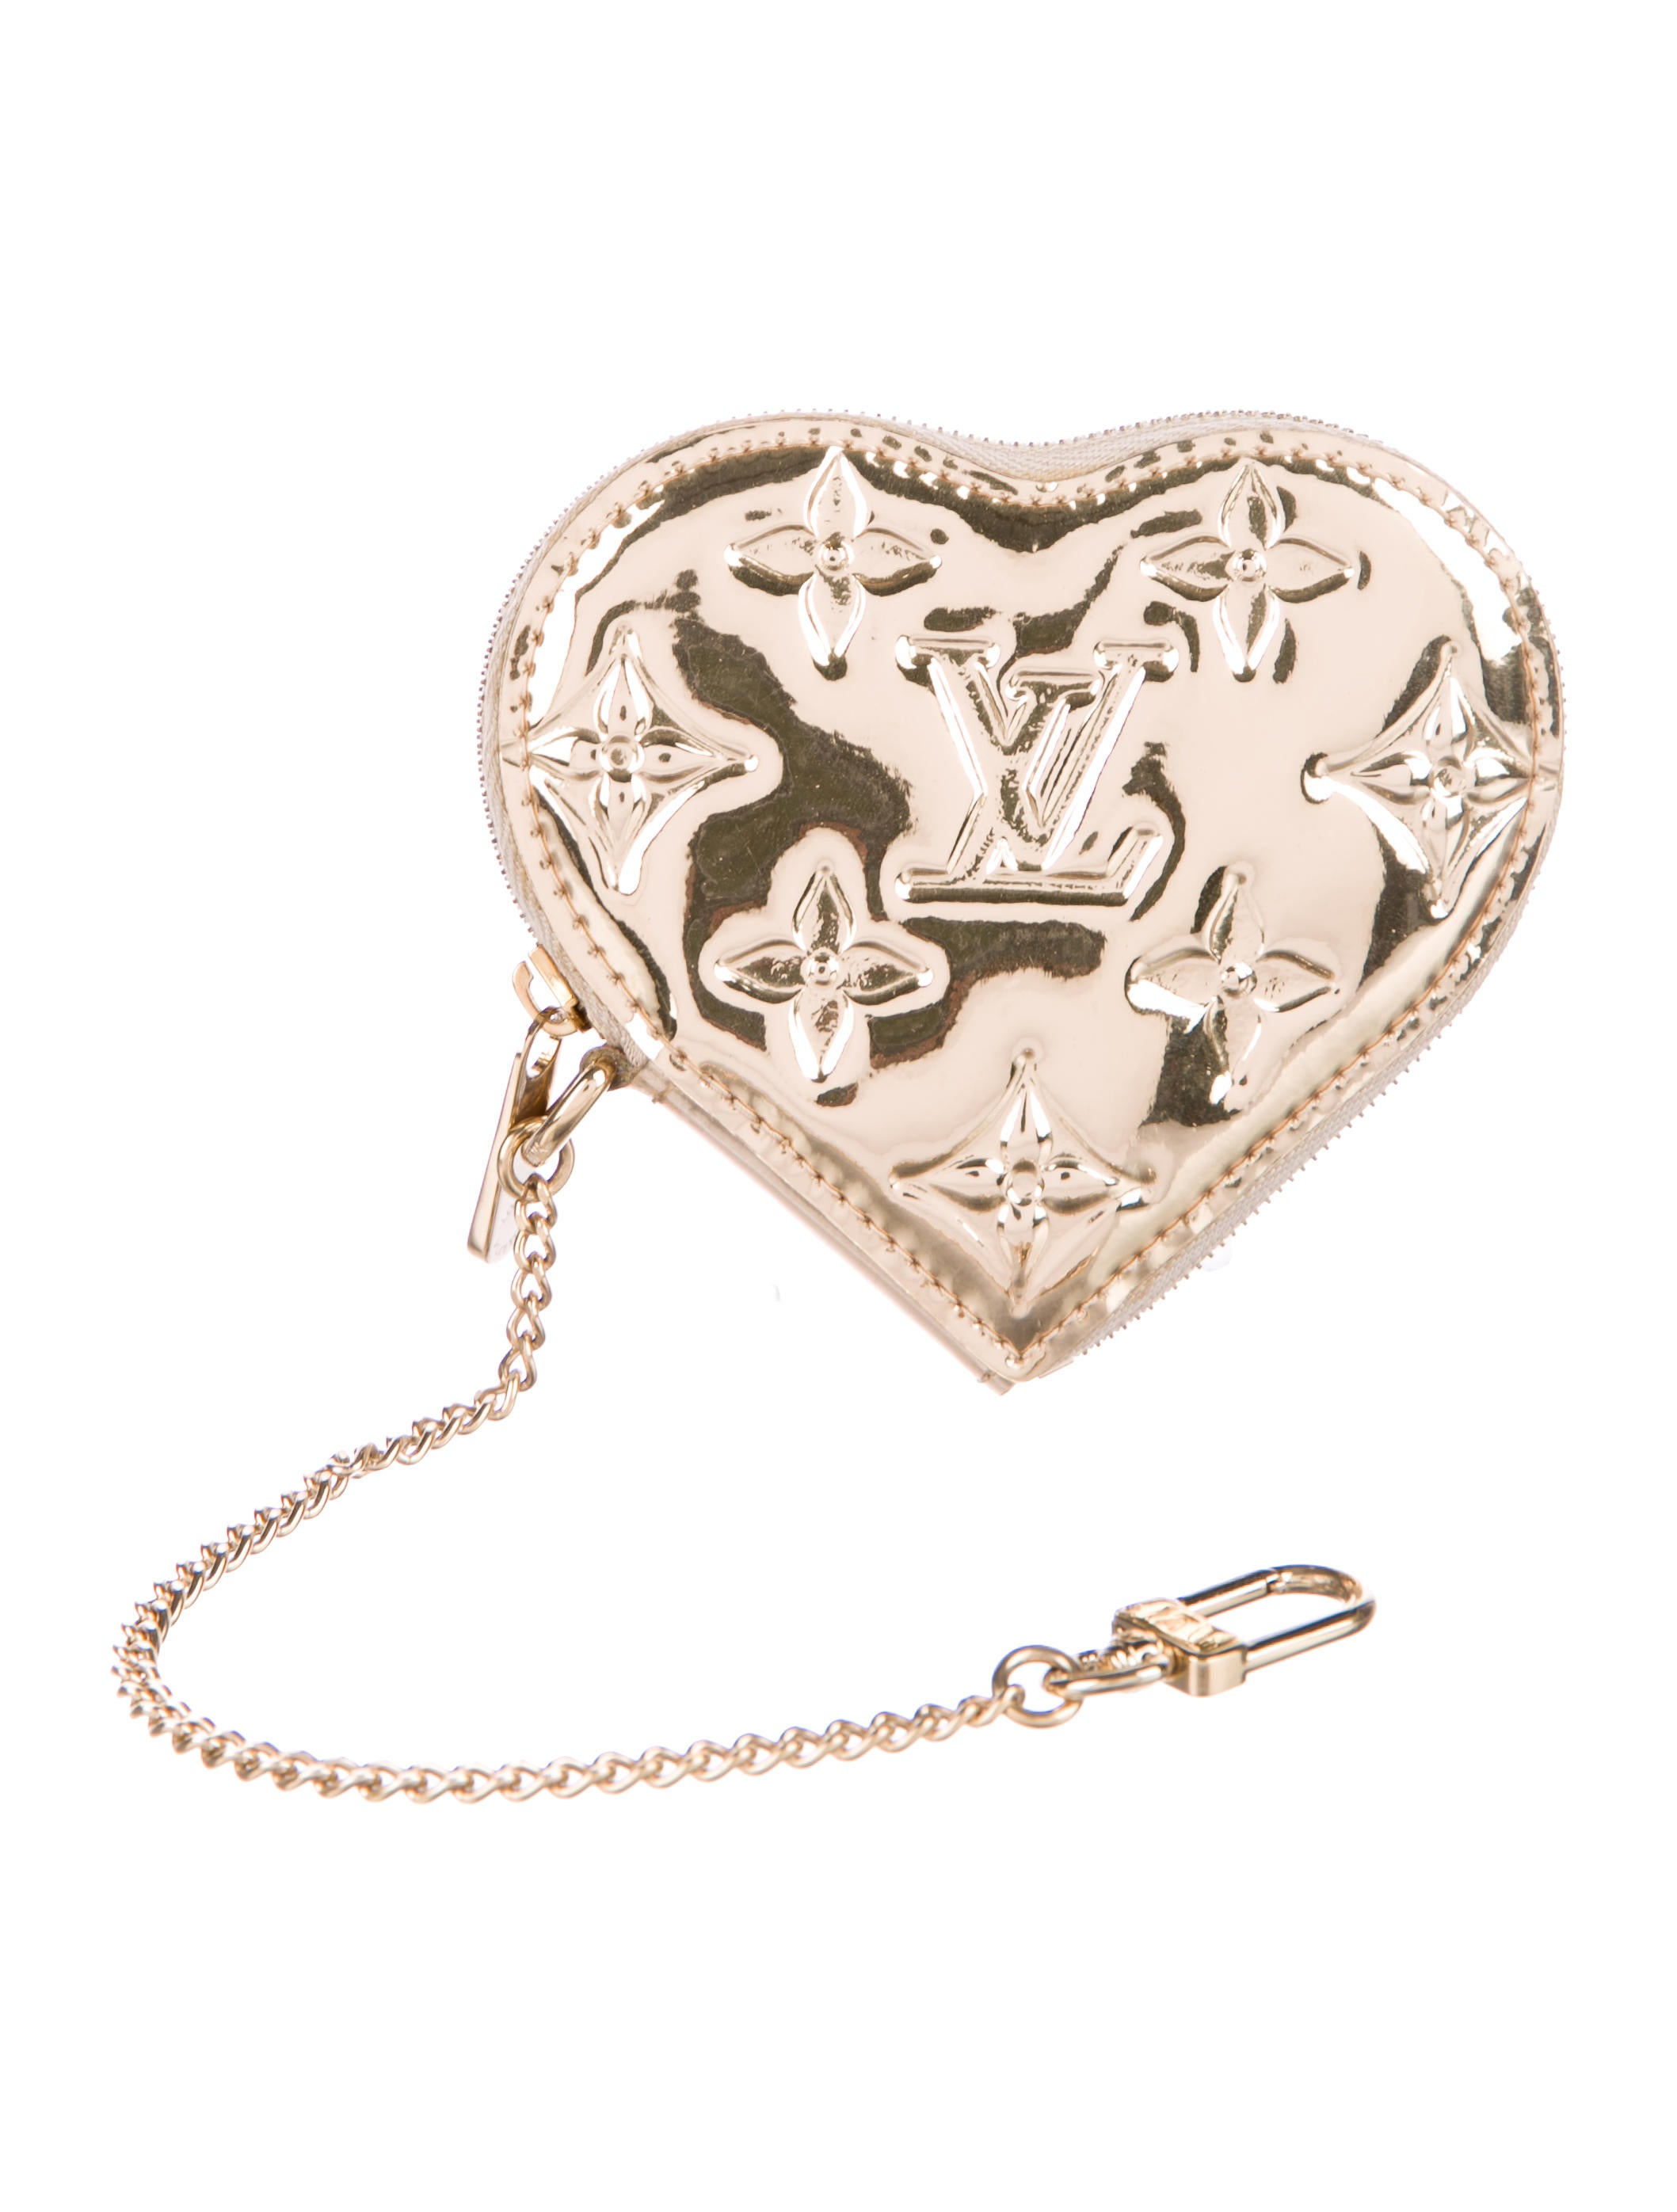 Louis vuitton monogram miroir heart coin purse for Monogram miroir